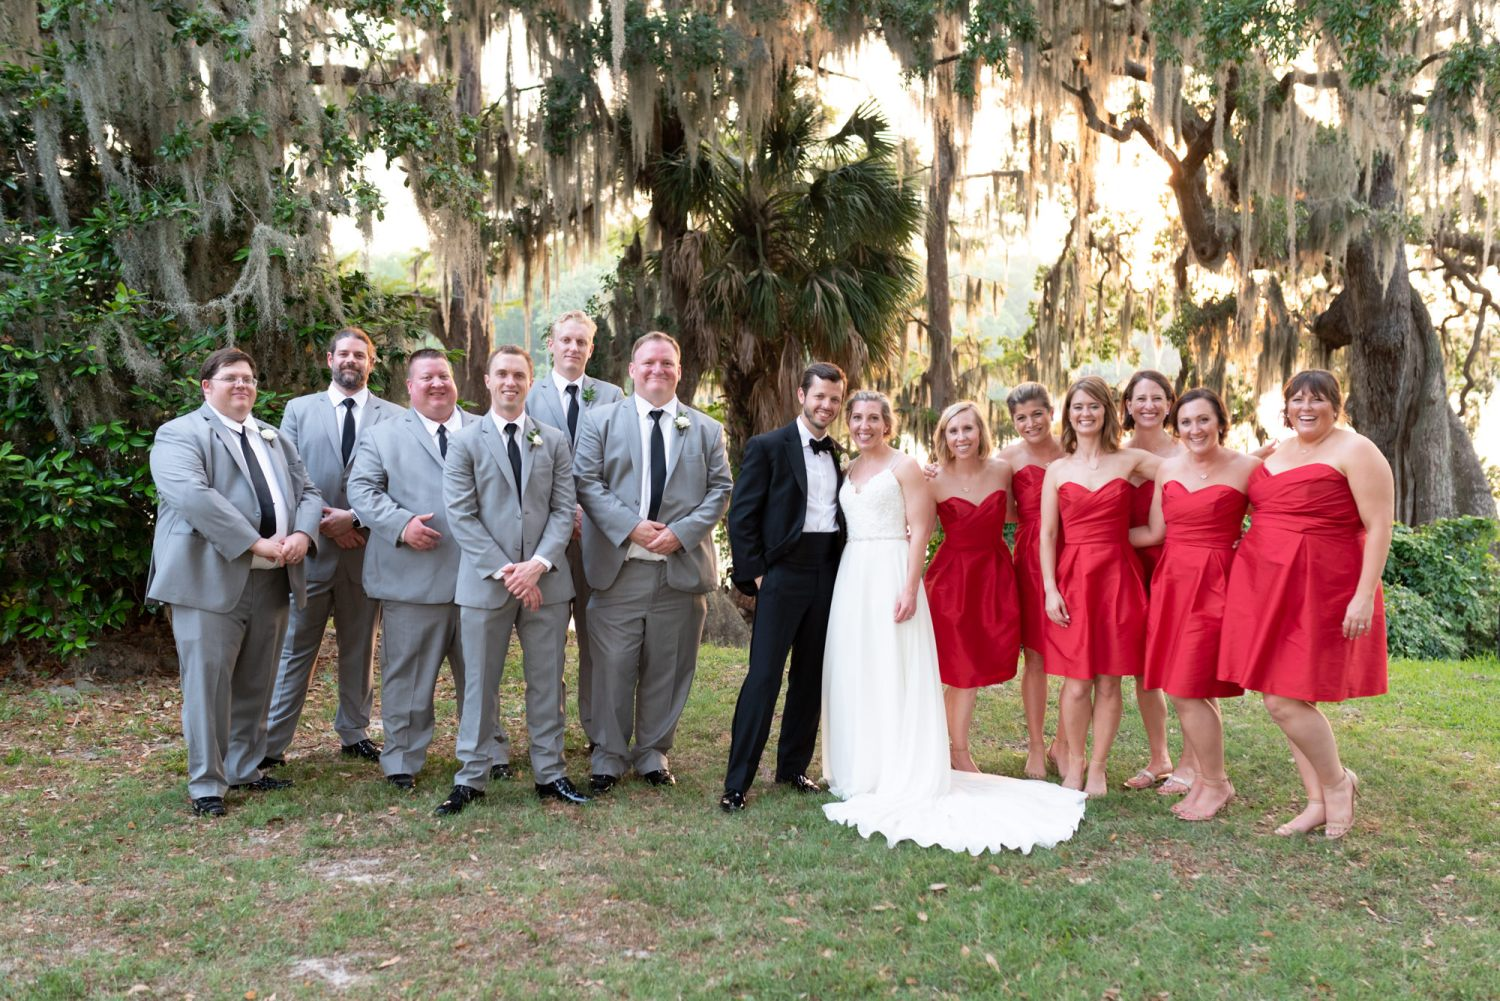 Bridal party under the moss from the oak trees at sunset - Wachesaw Plantation